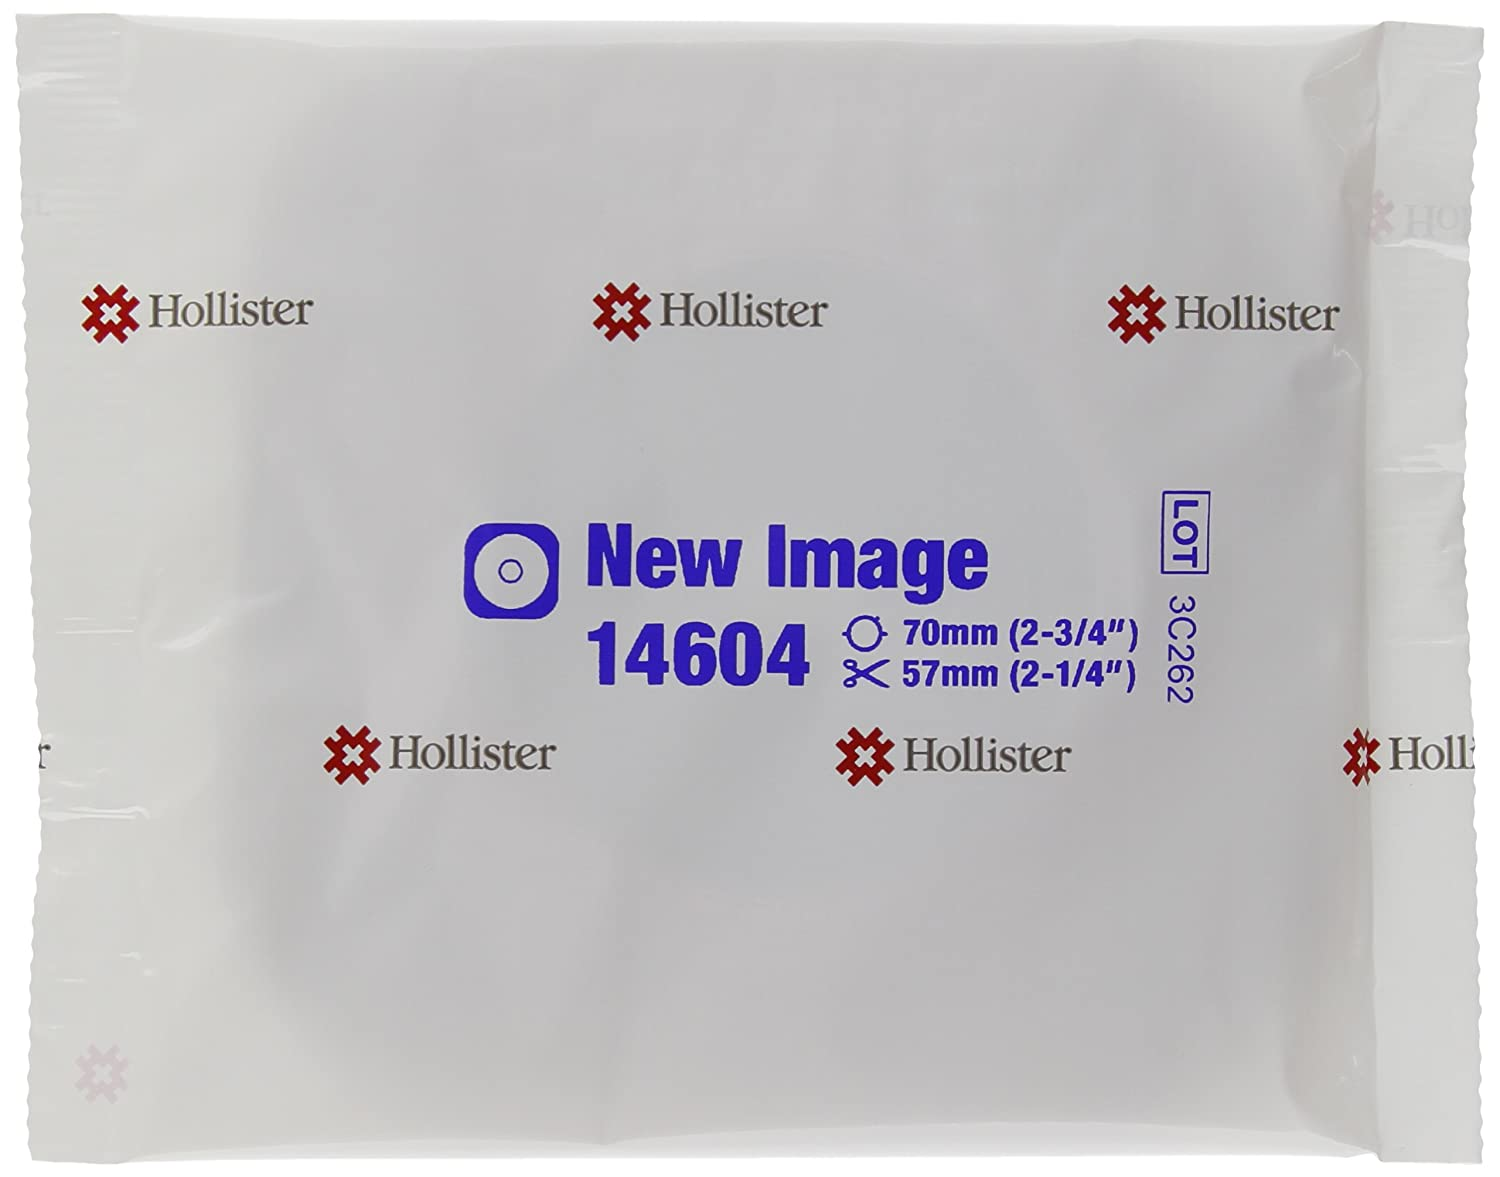 Hollister New Image Flextend Flat Skin Barrier with Tape Border, 5 Count